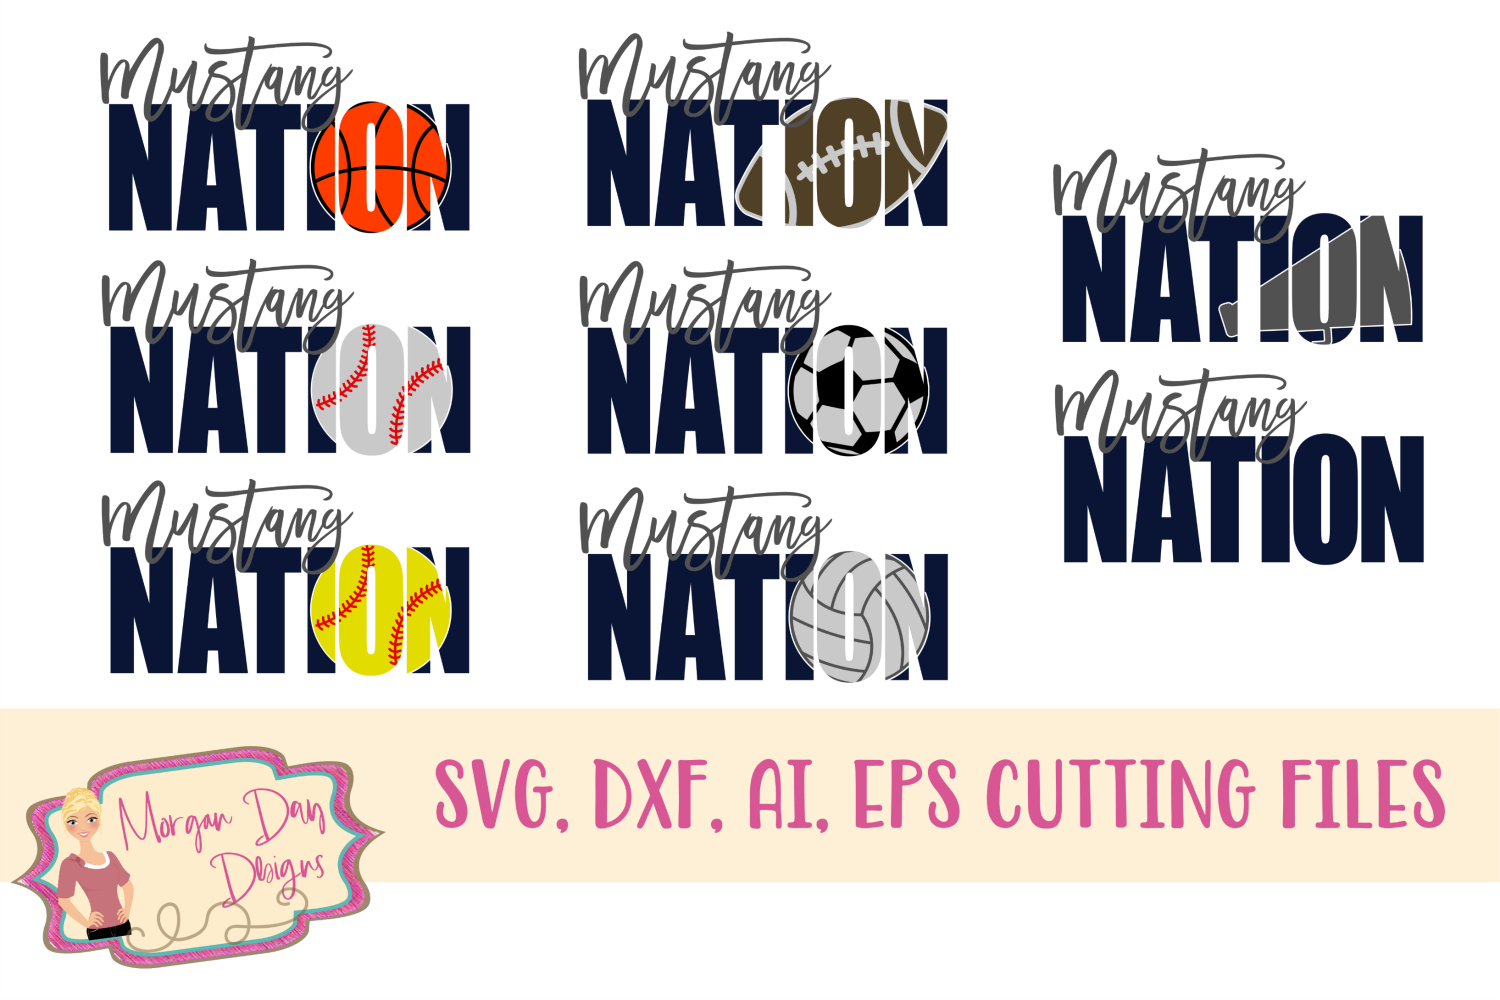 Mustang Nation SVG, DXF, AI, EPS example image 1